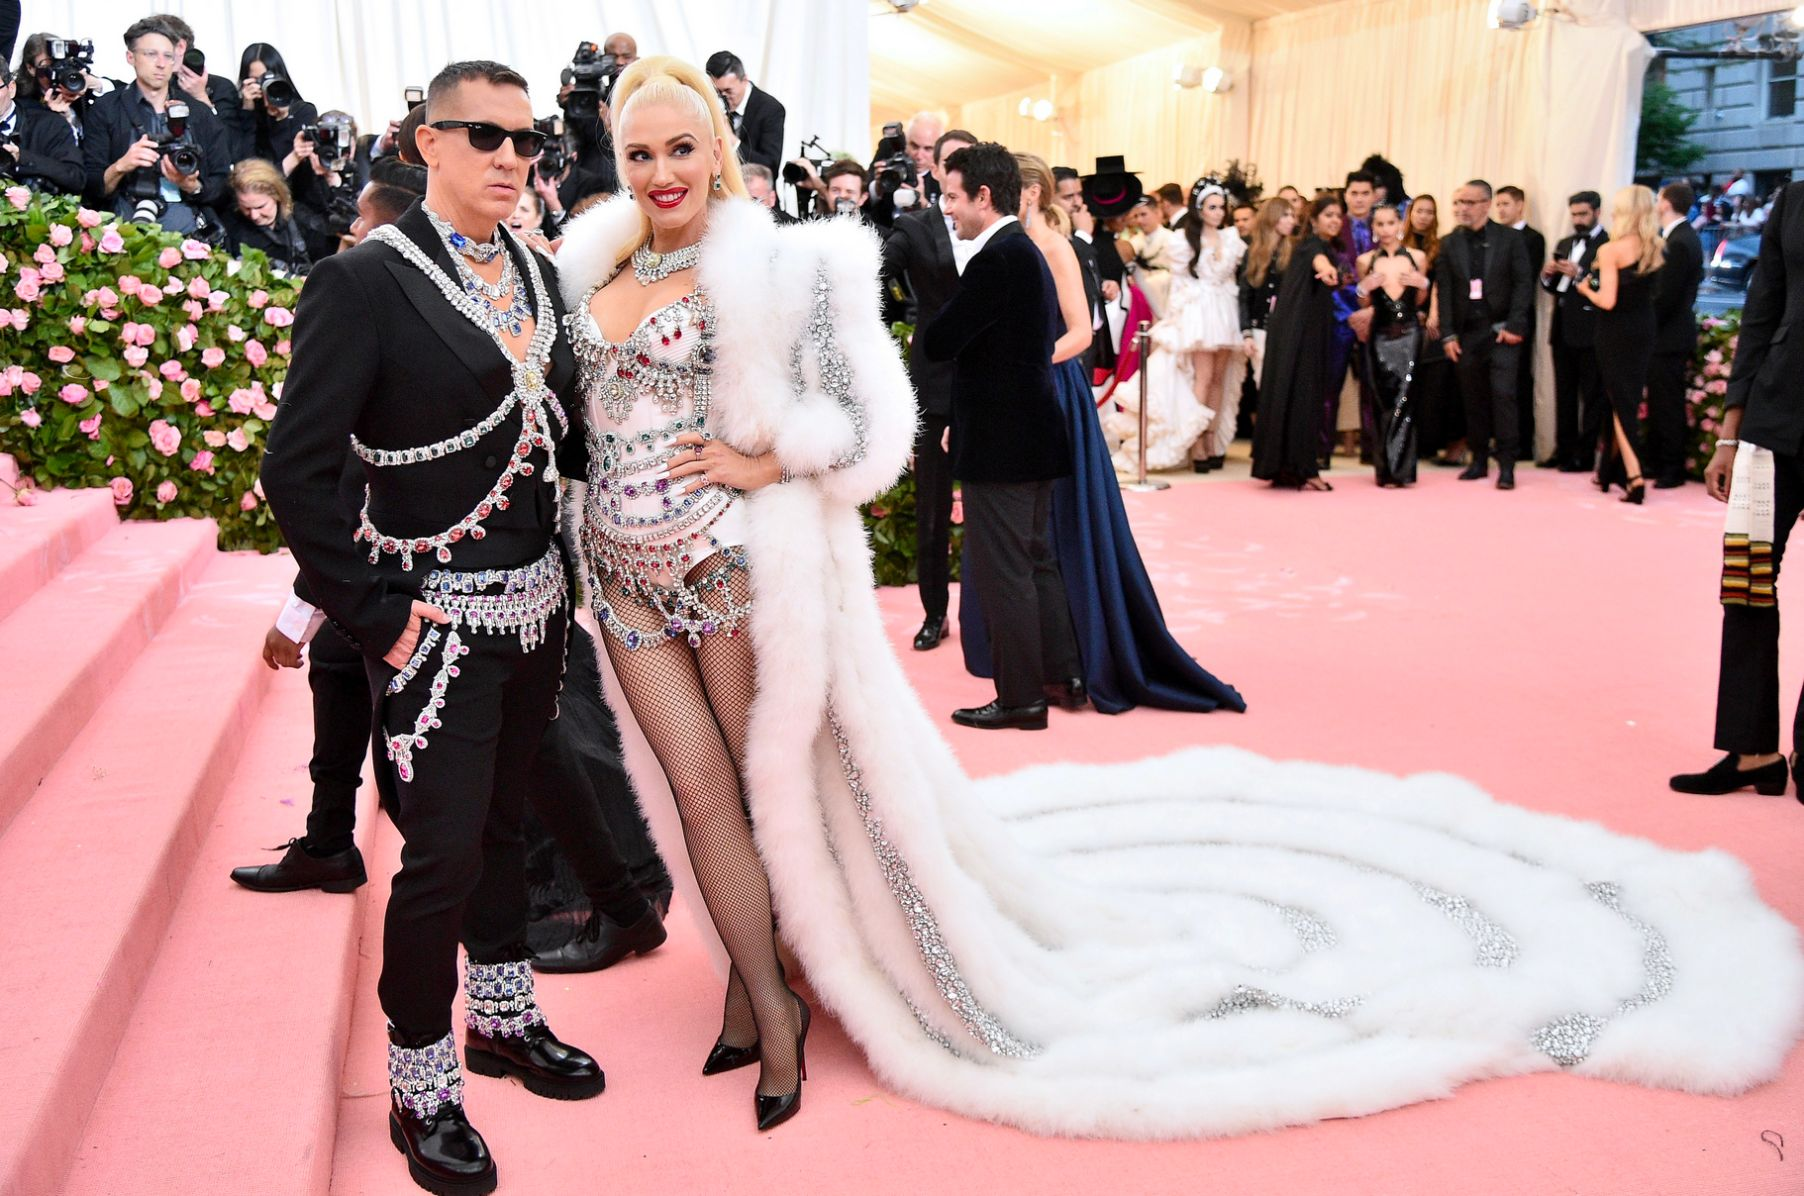 Jeremy Scott and Gwen Stefani with Christian Louboutin shoes met gala 2019 fashion